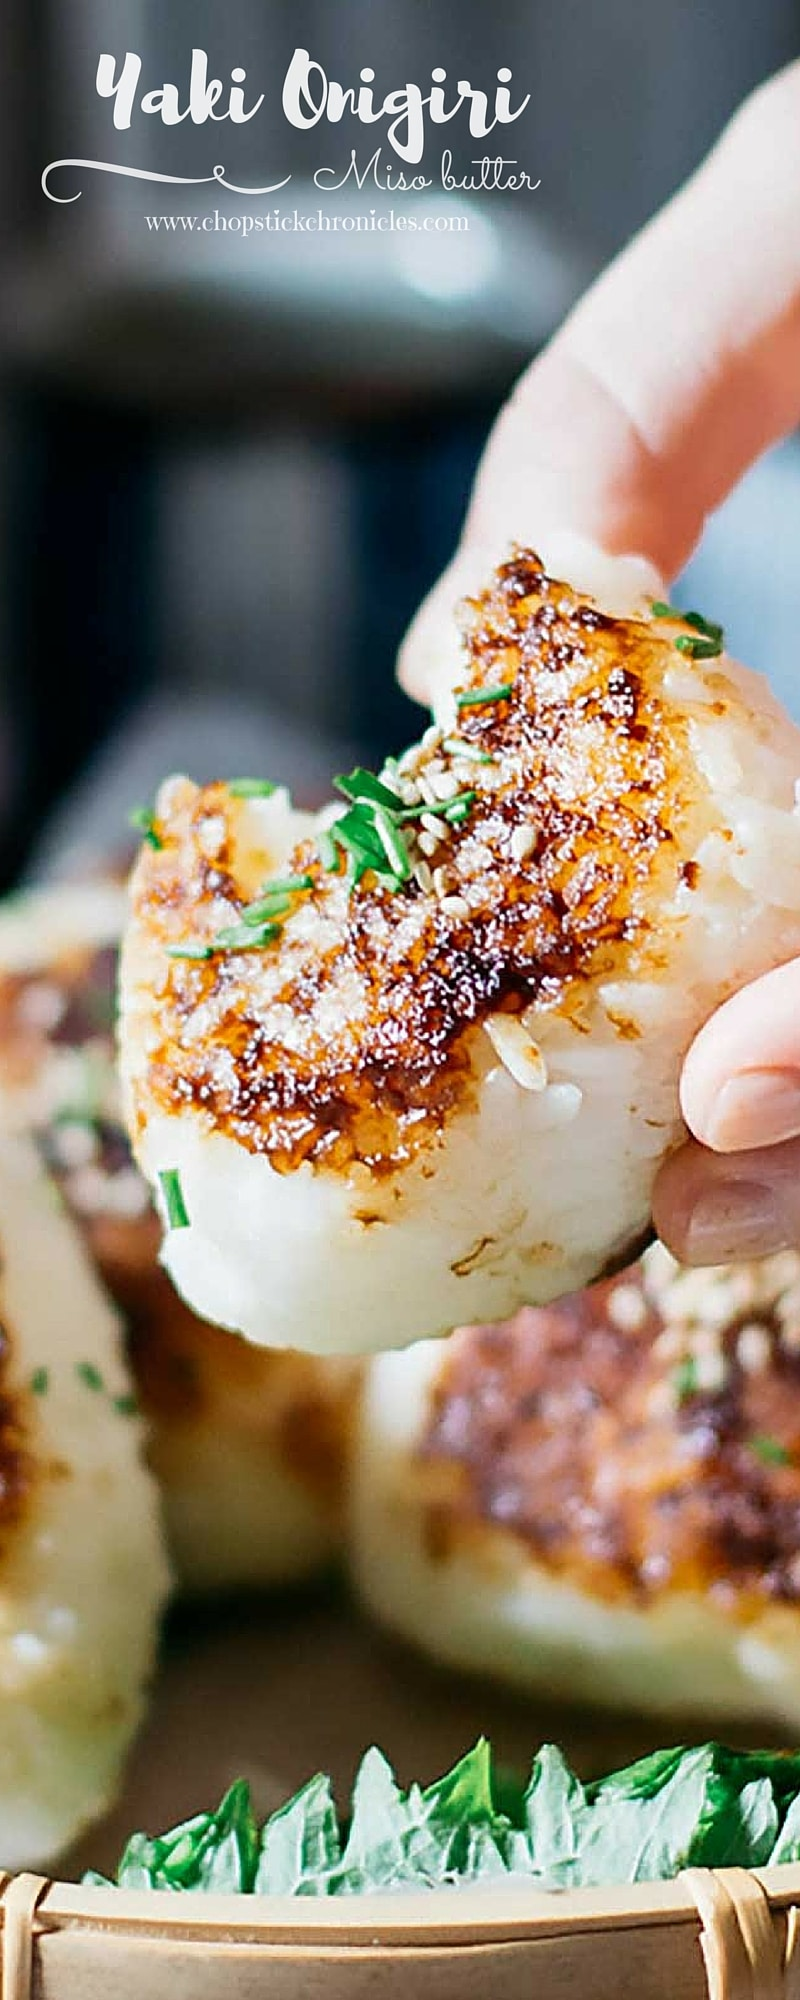 Yaki Onigiri (Grilled Rice Ball) with Miso Butter Sauce 焼き ...